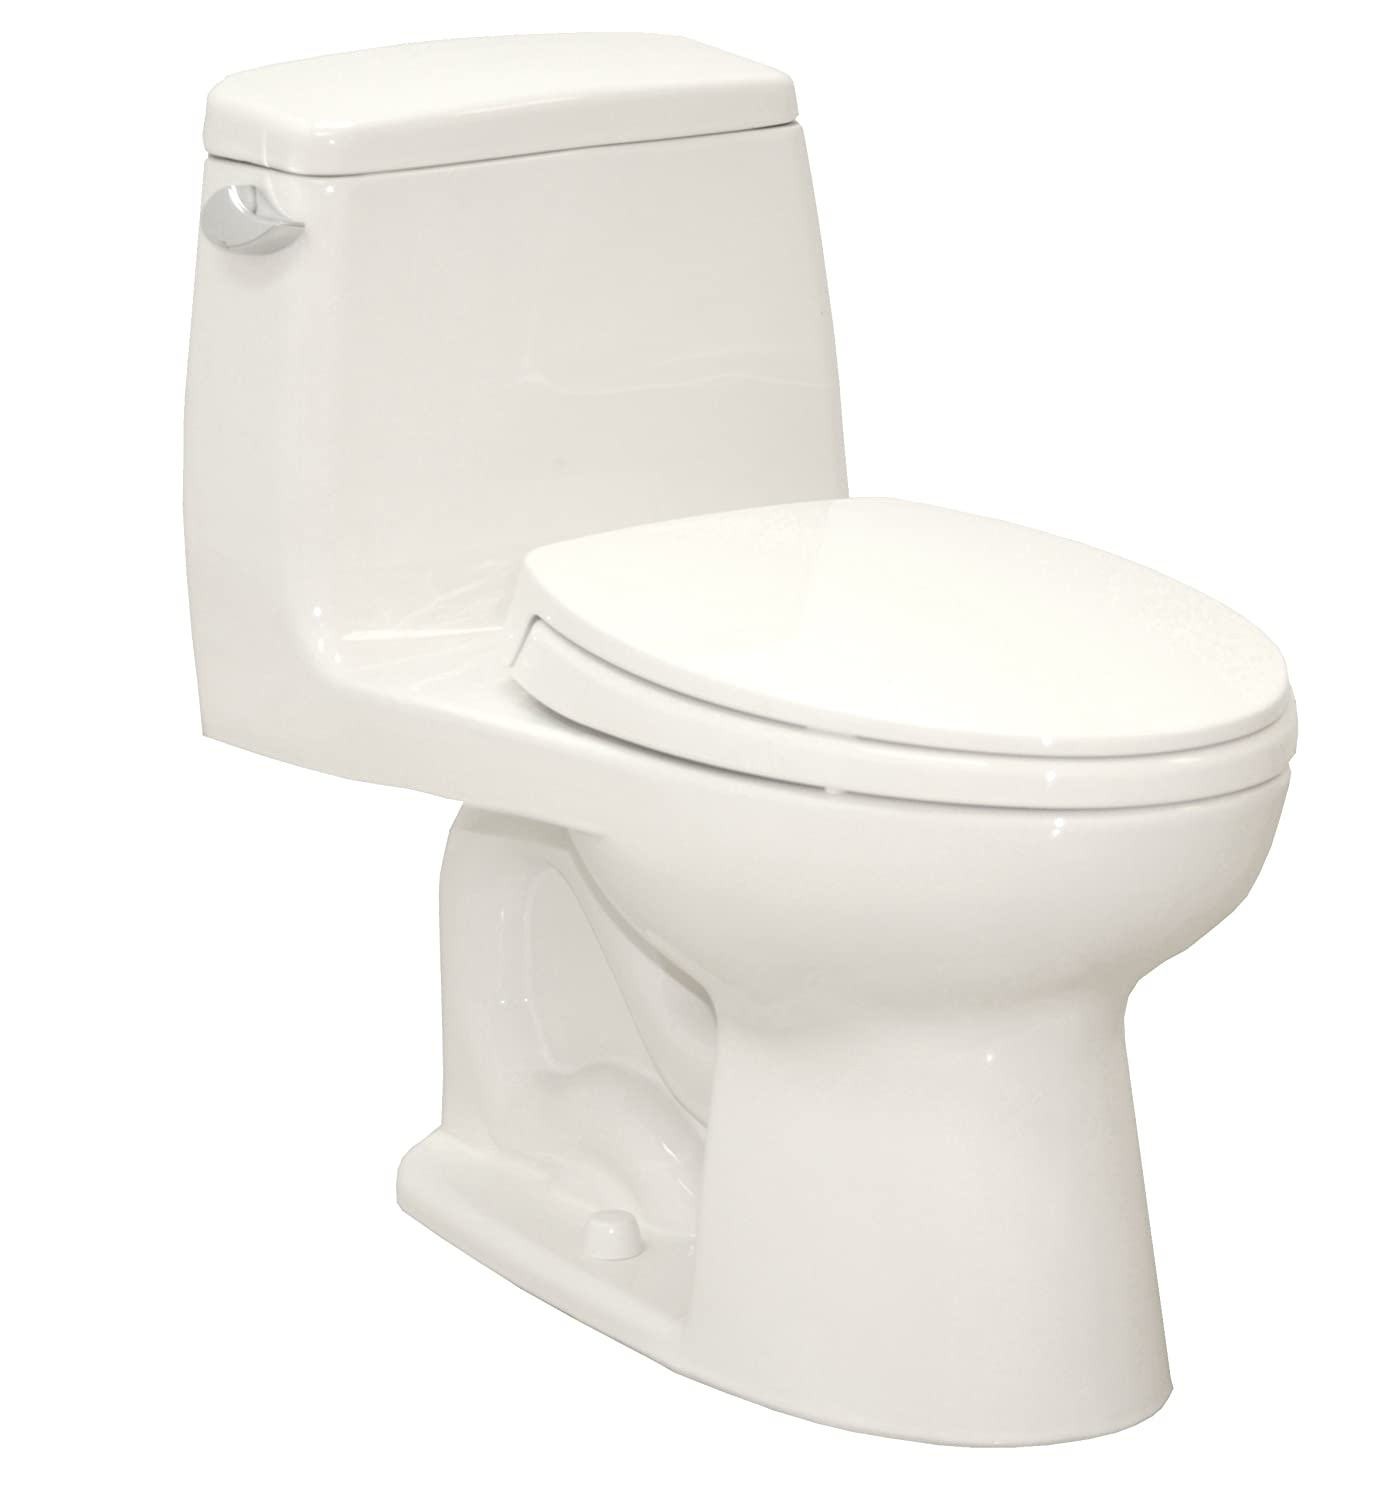 TOTO MS SG 01 Ultramax Elongated e Piece Toilet with